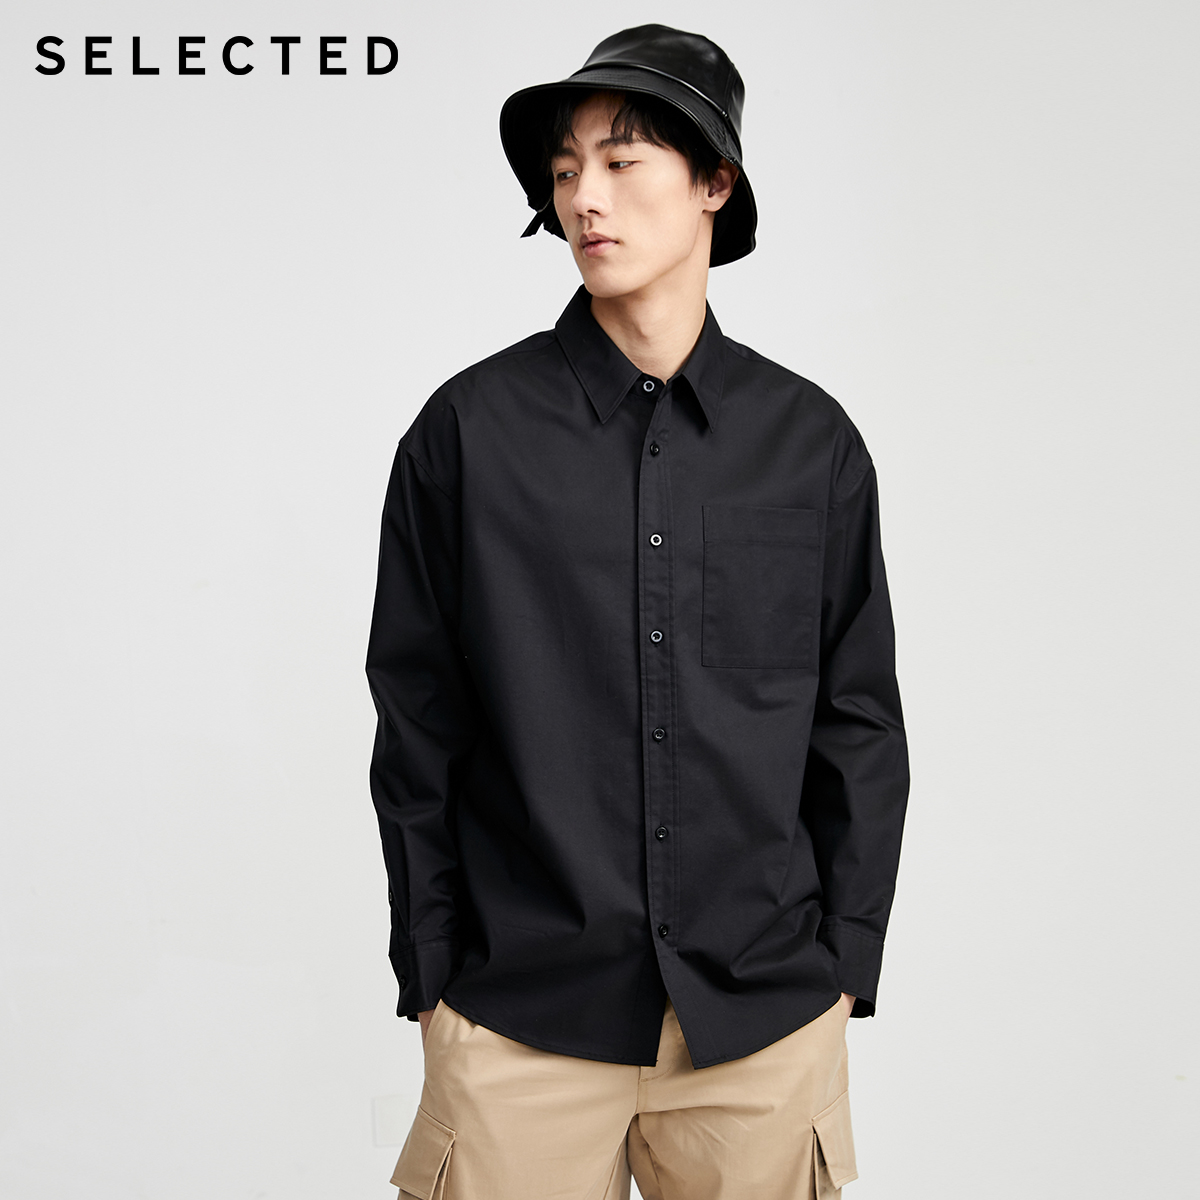 SELECTED Men's Loose Fit Retro Business Casual Long-sleeved Shirt S|420205513